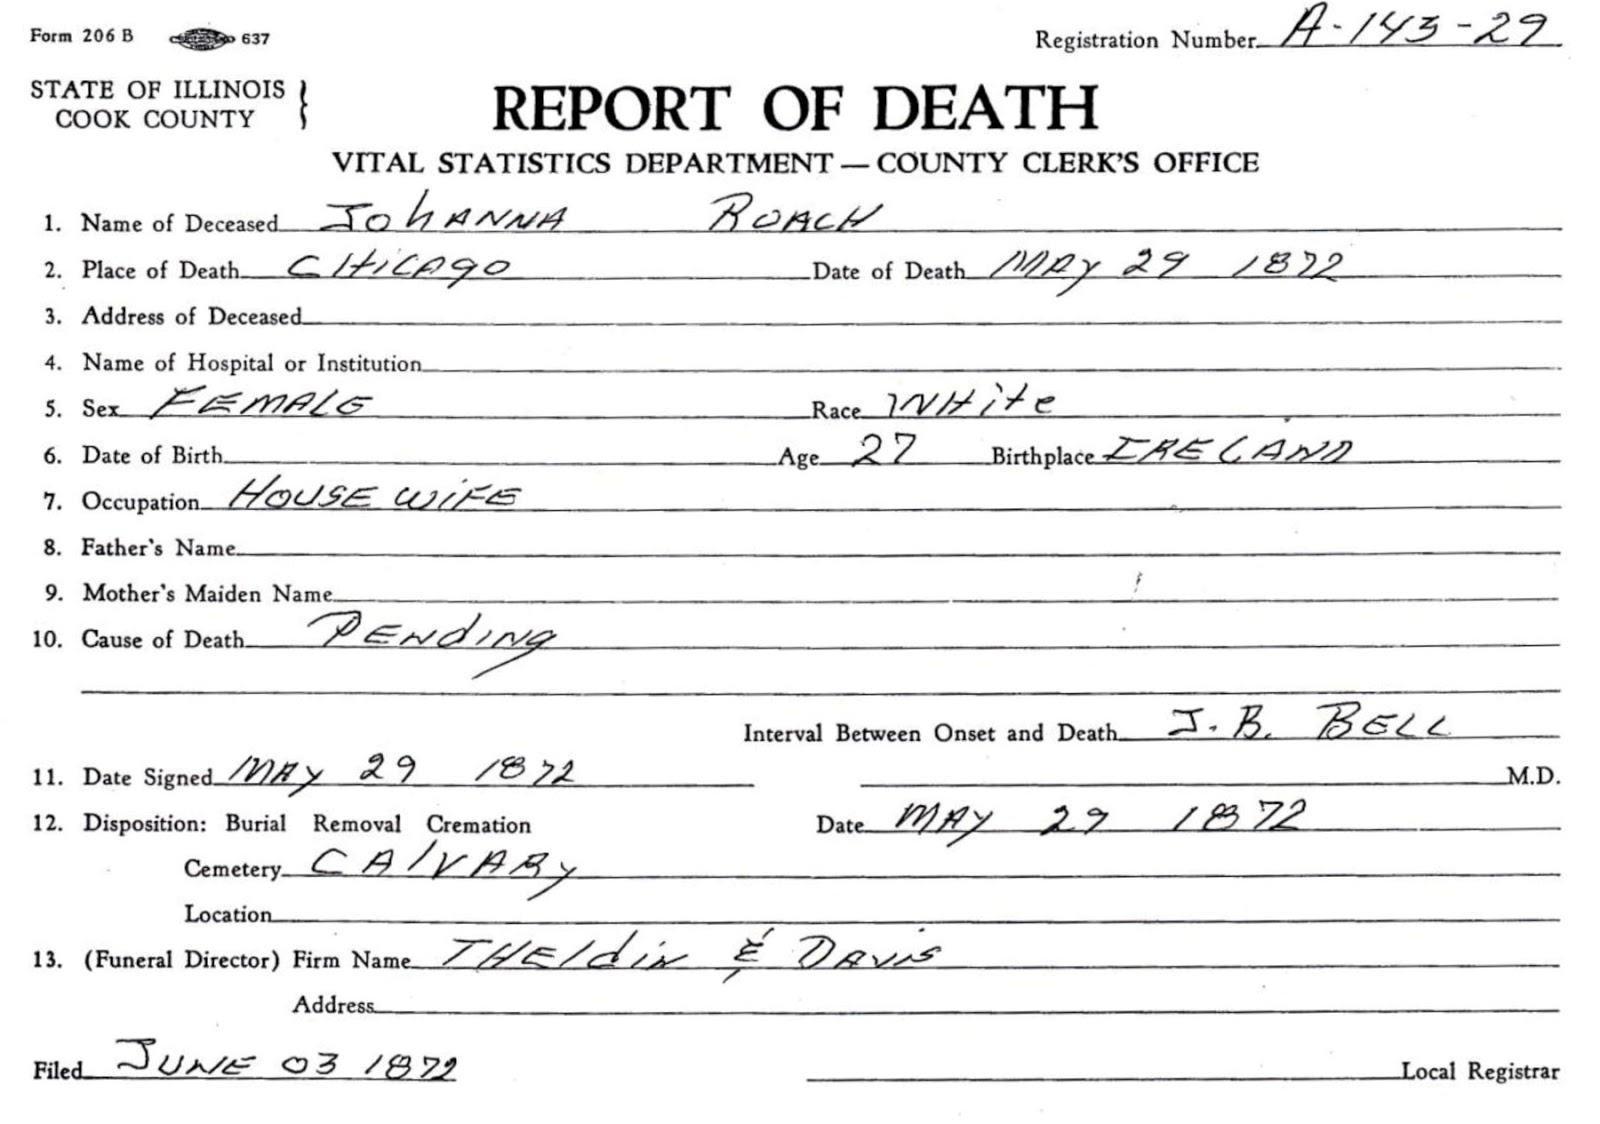 report of death chicago il click to enlarge